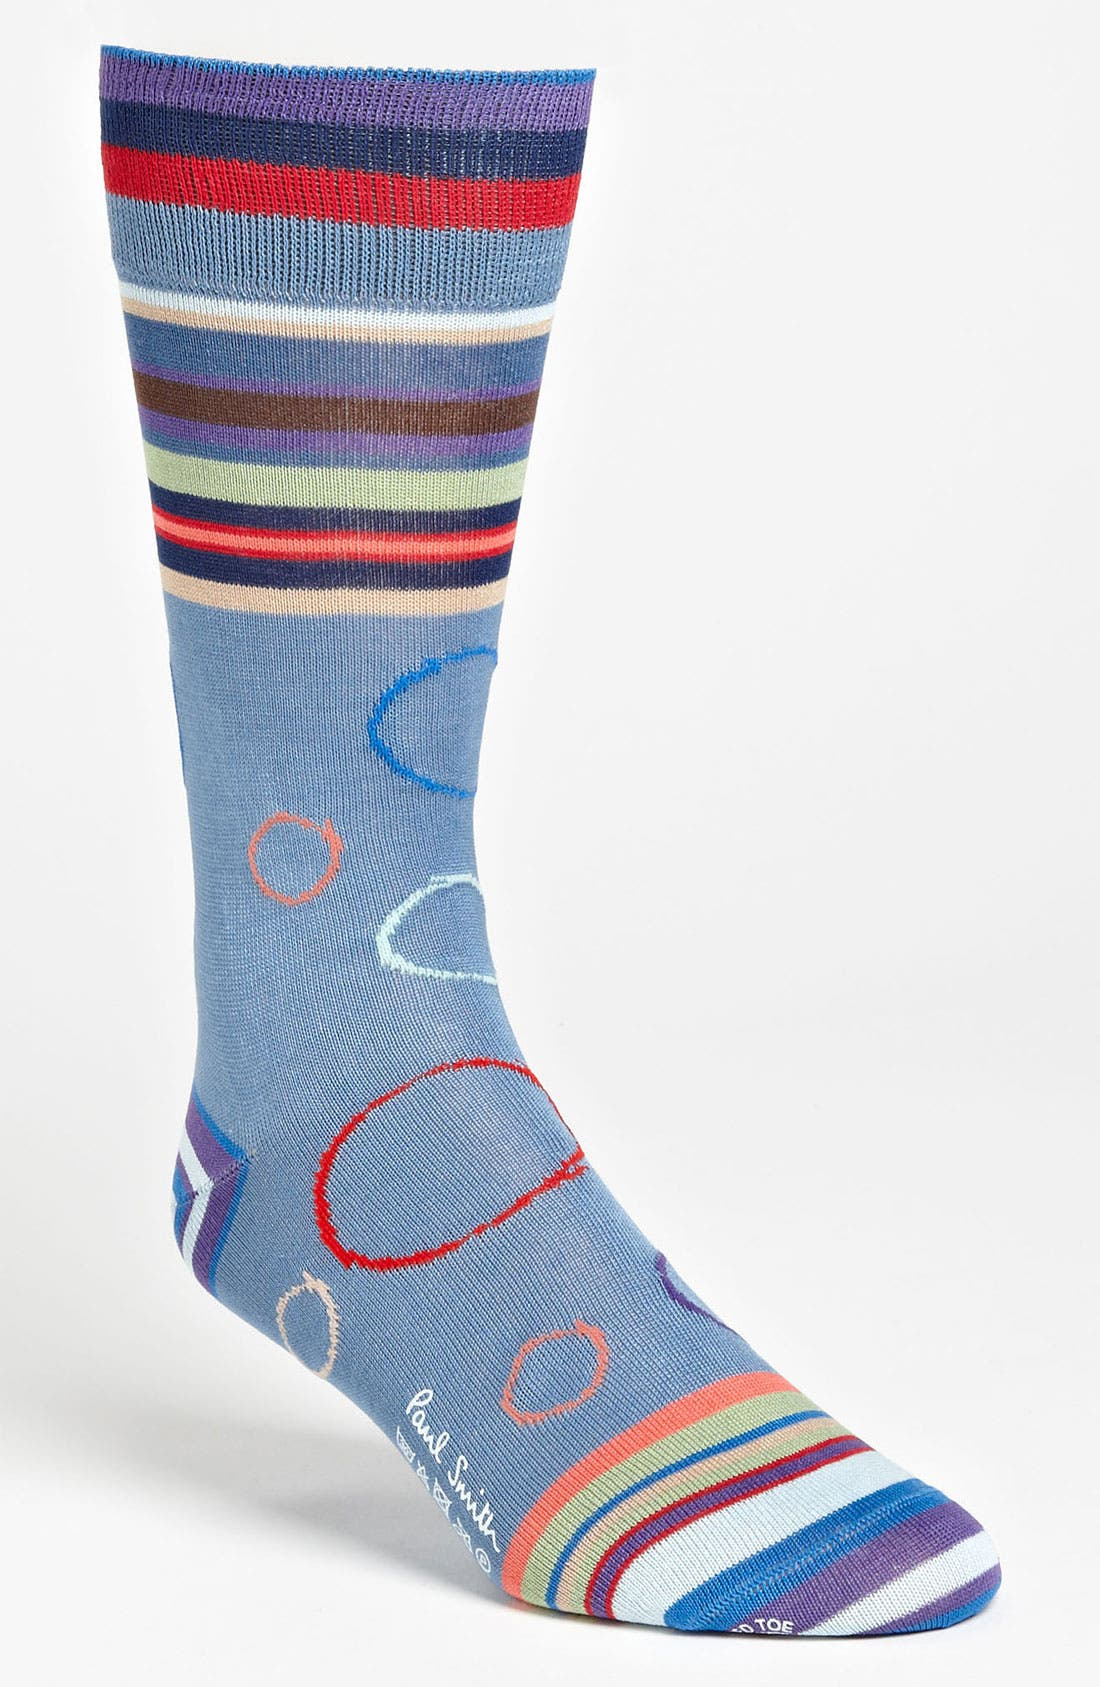 Main Image - Paul Smith Accessories Pattern Socks